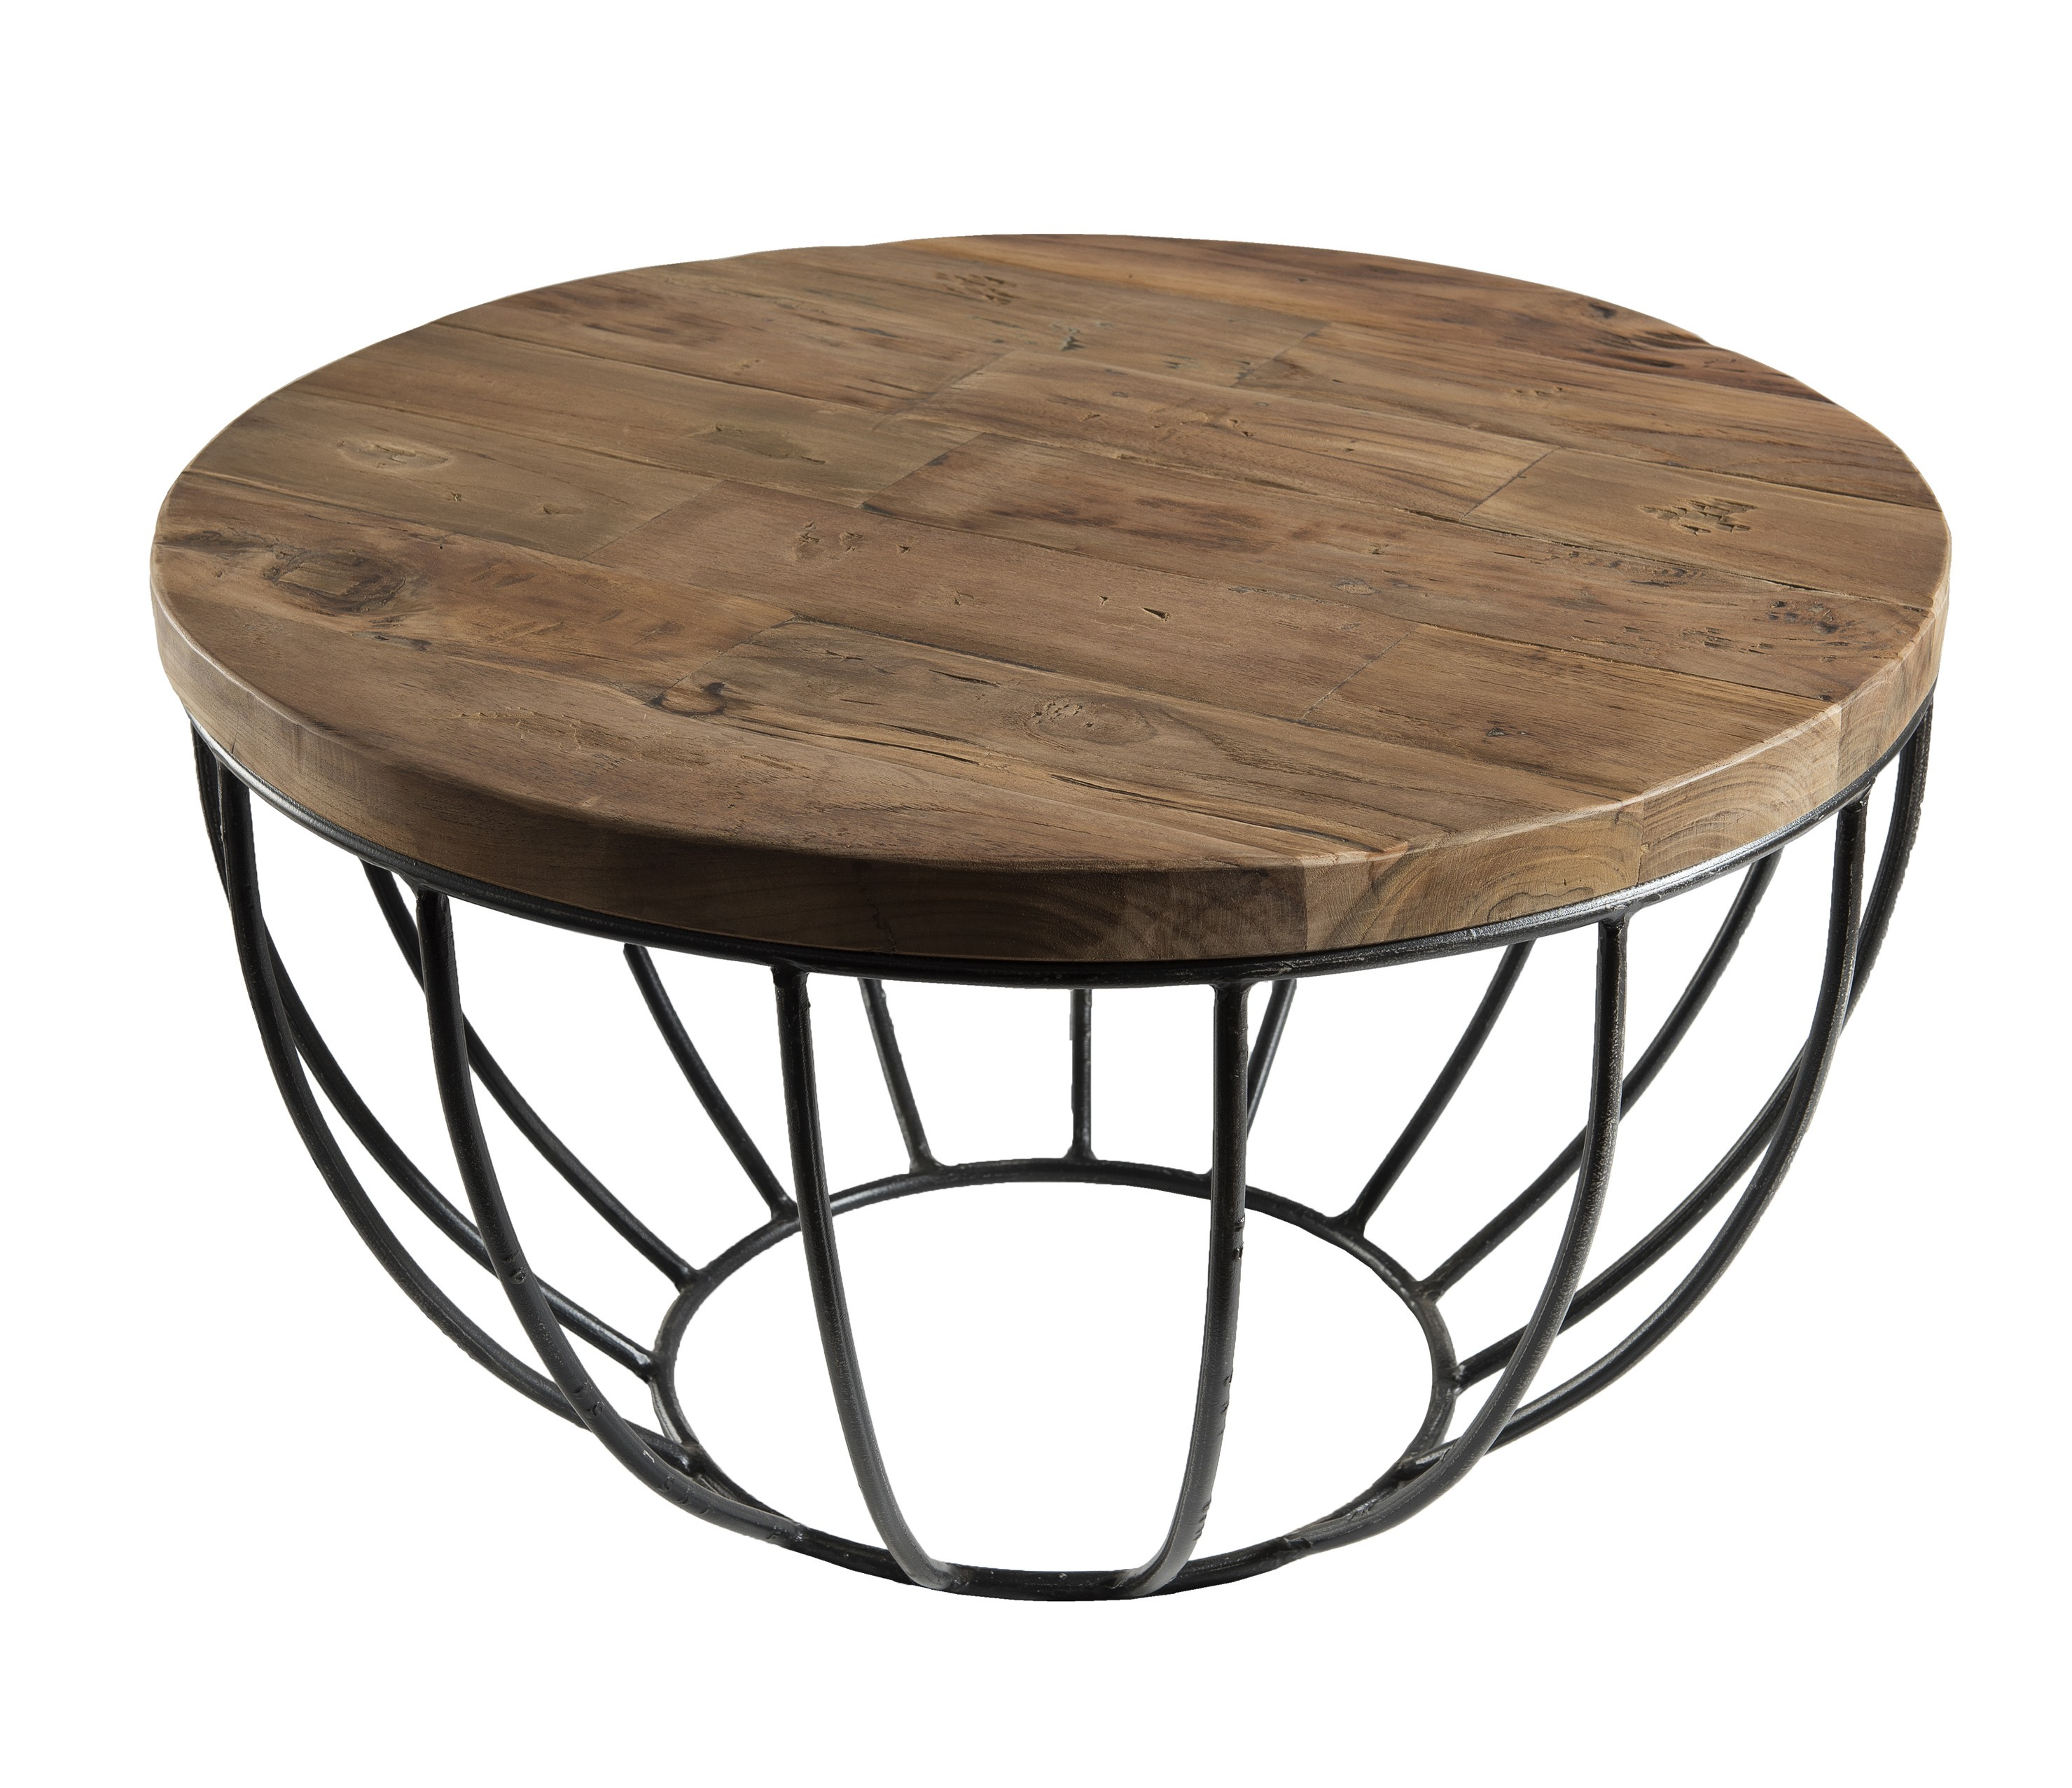 petite table basse ronde teck recycle structure filaire noire swing